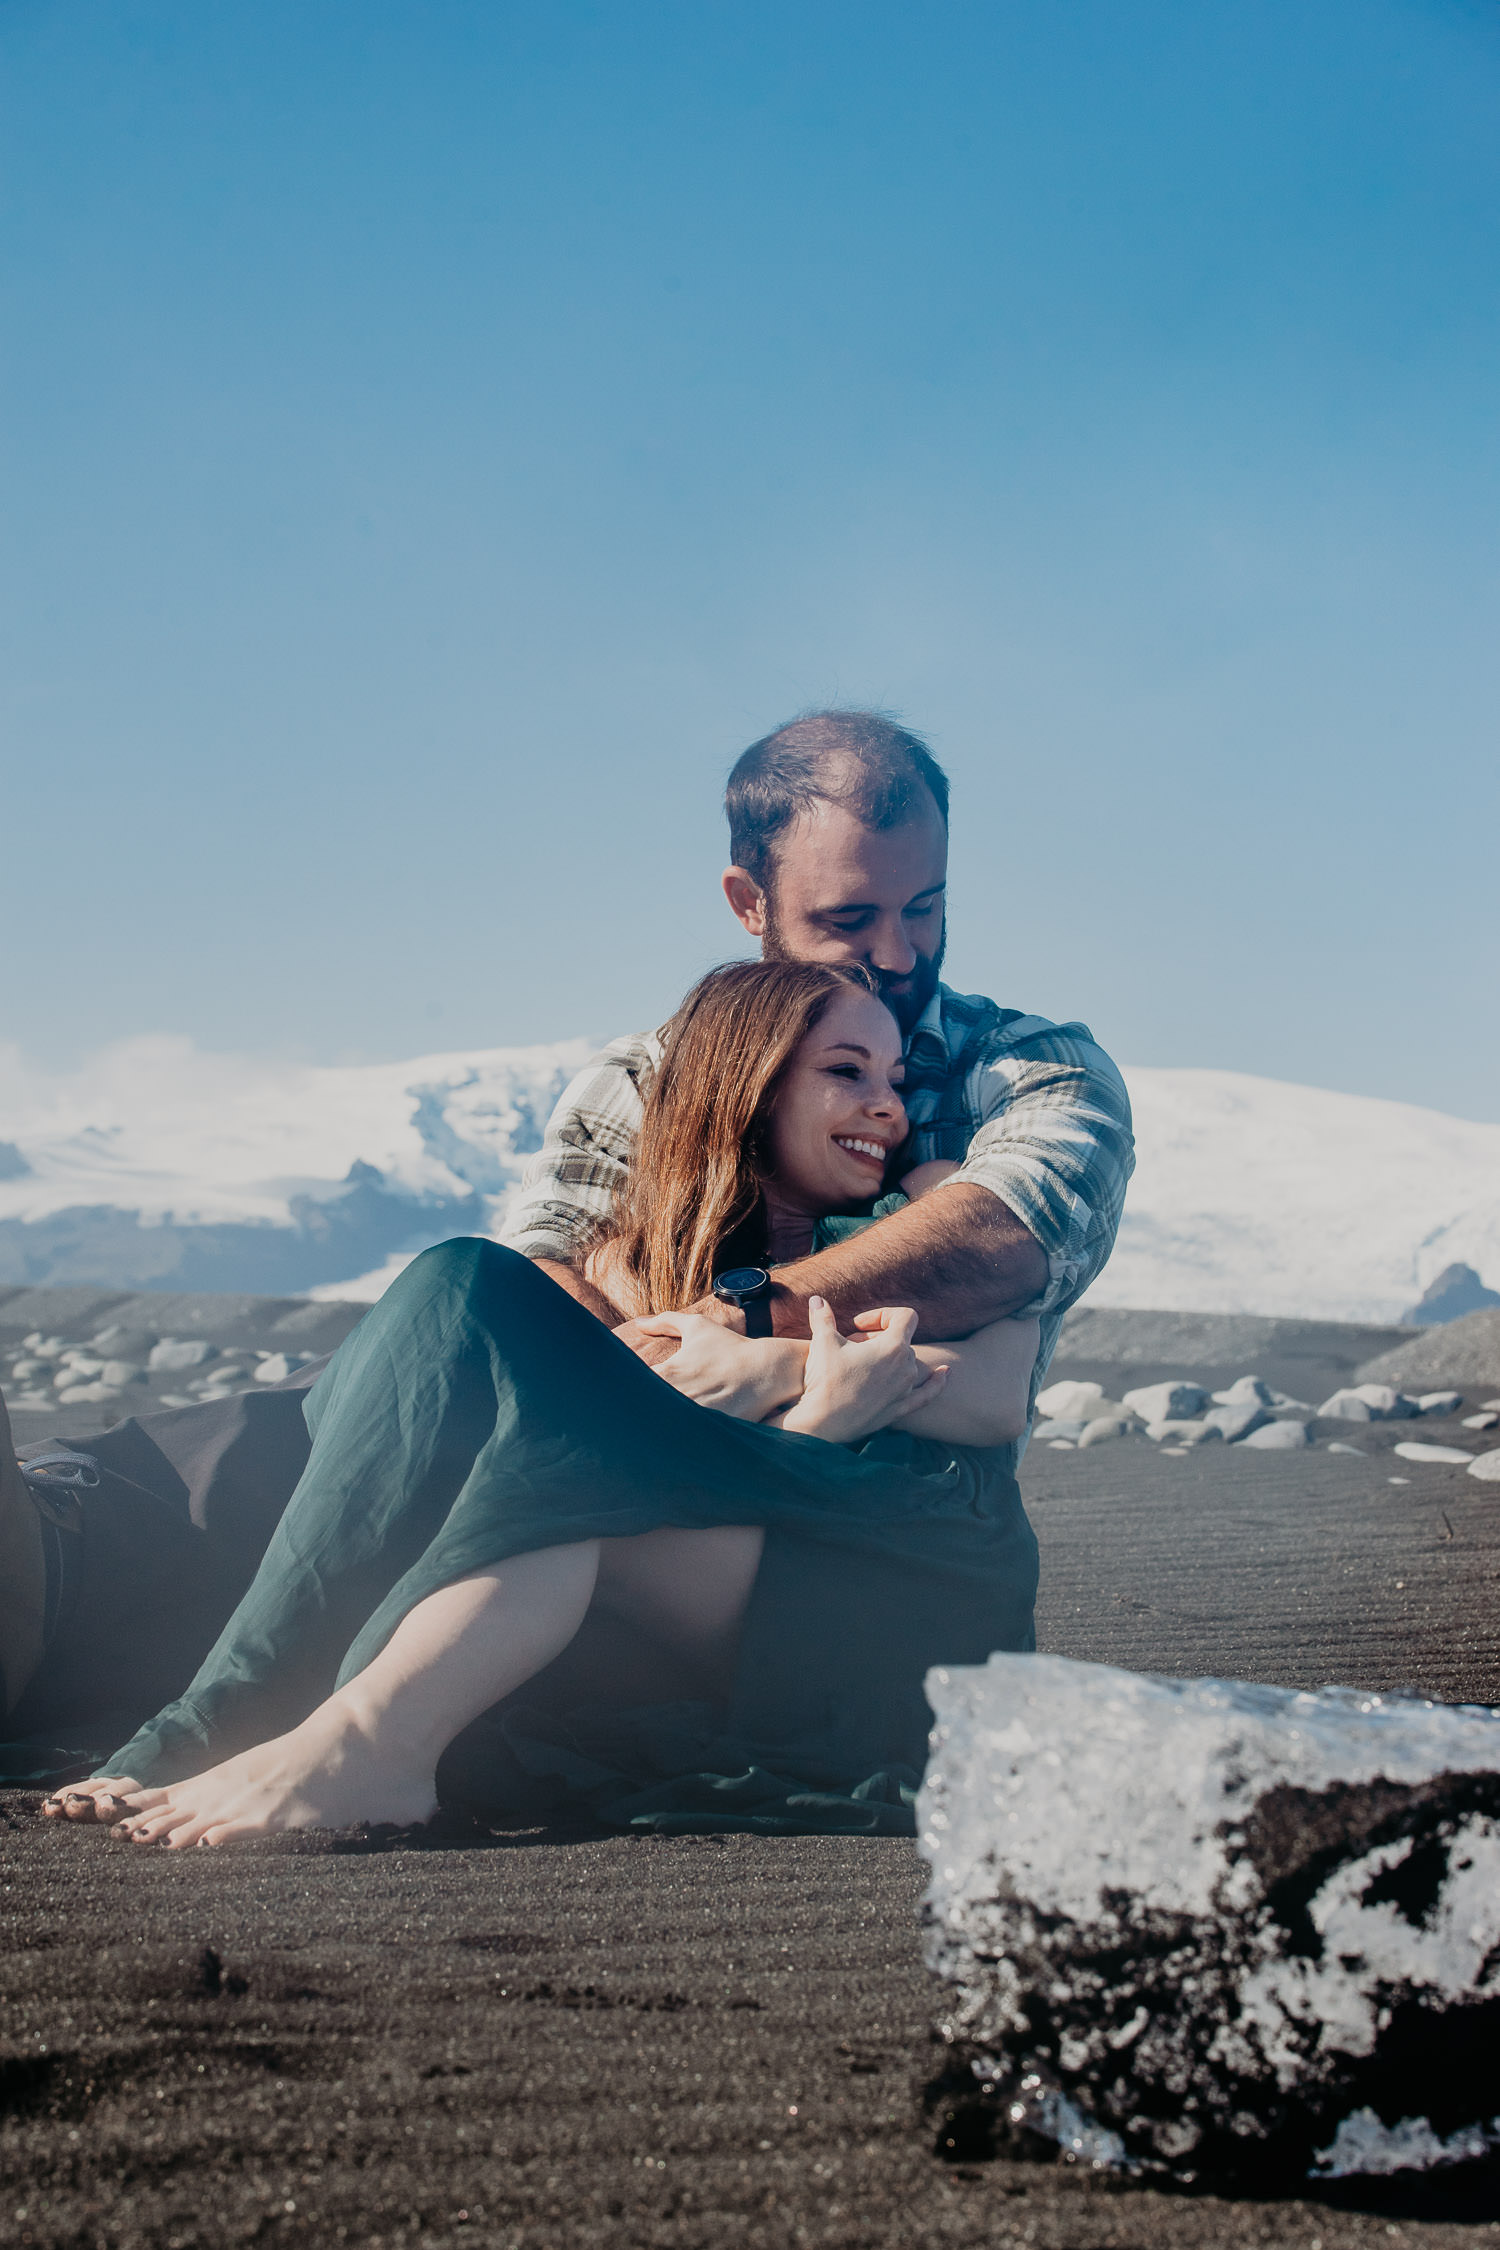 Iceland Adventure Photoshoot, Iceland Engagement Photography, Iceland Elopement Photography, Iceland Wedding, Iceland Elopement Photographer, diamond beach